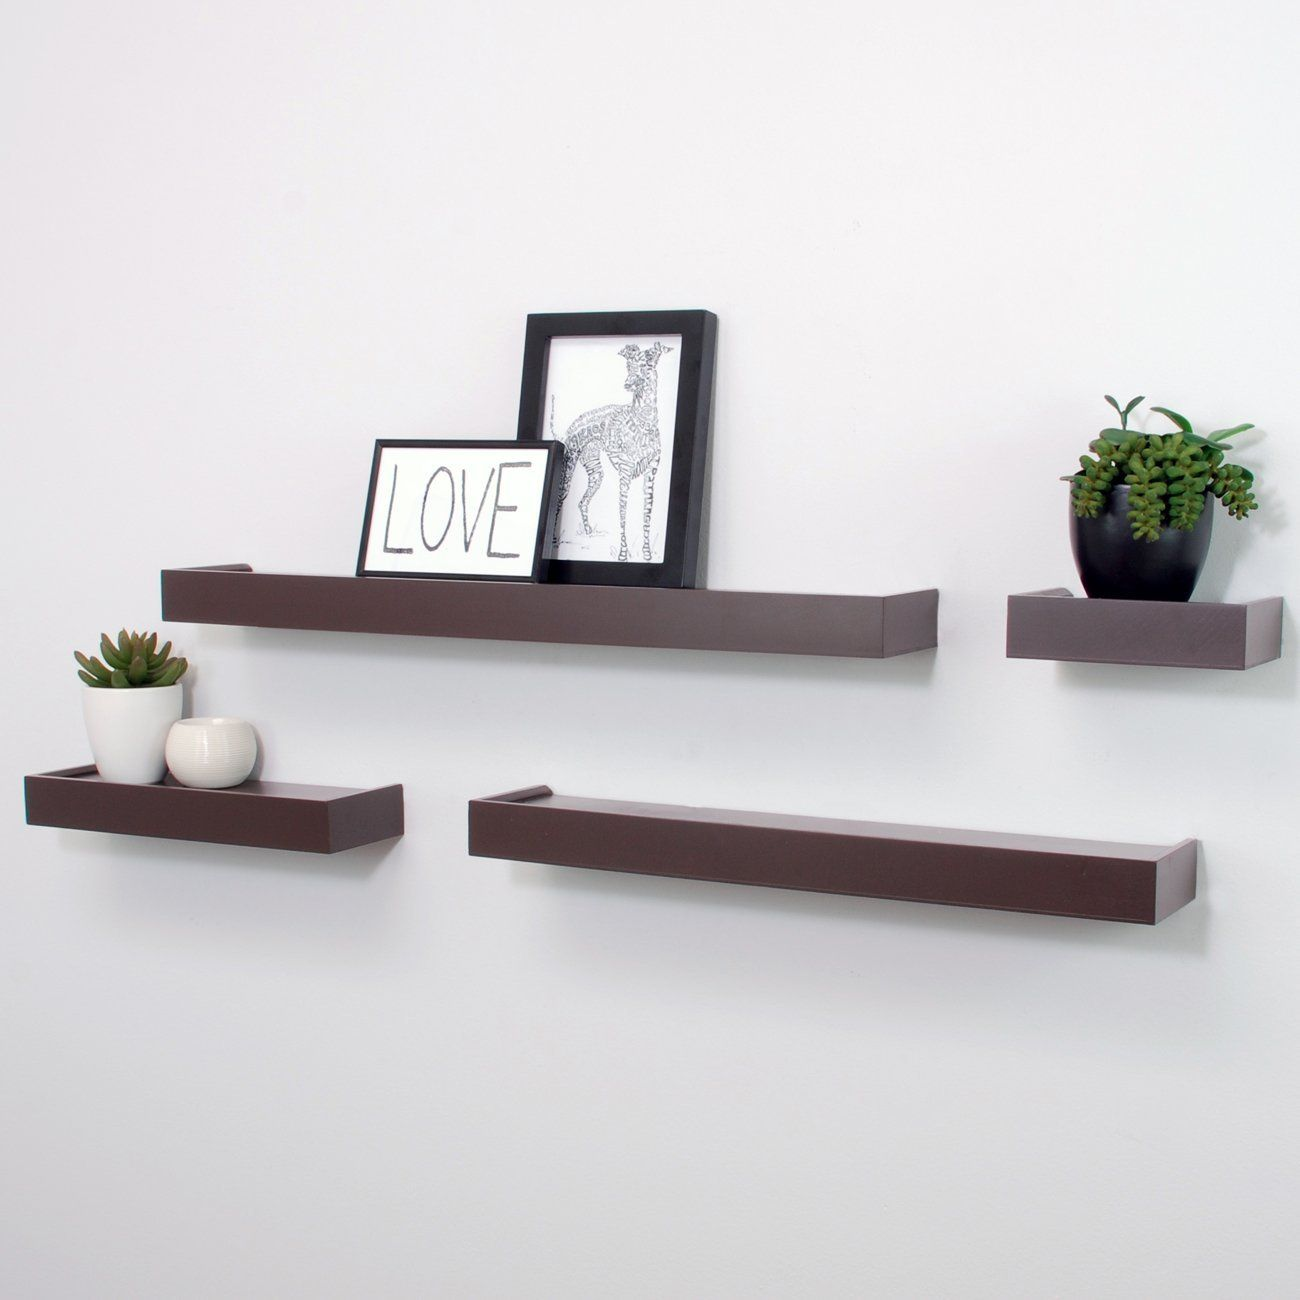 Amazon Com Nexxt Vertigo Set Of 4 Ledge Shelves 6 Inch 12 Inch 20 Inch 24 Inch Espress Floating Shelves Diy Rustic Floating Shelves Wall Mounted Shelves